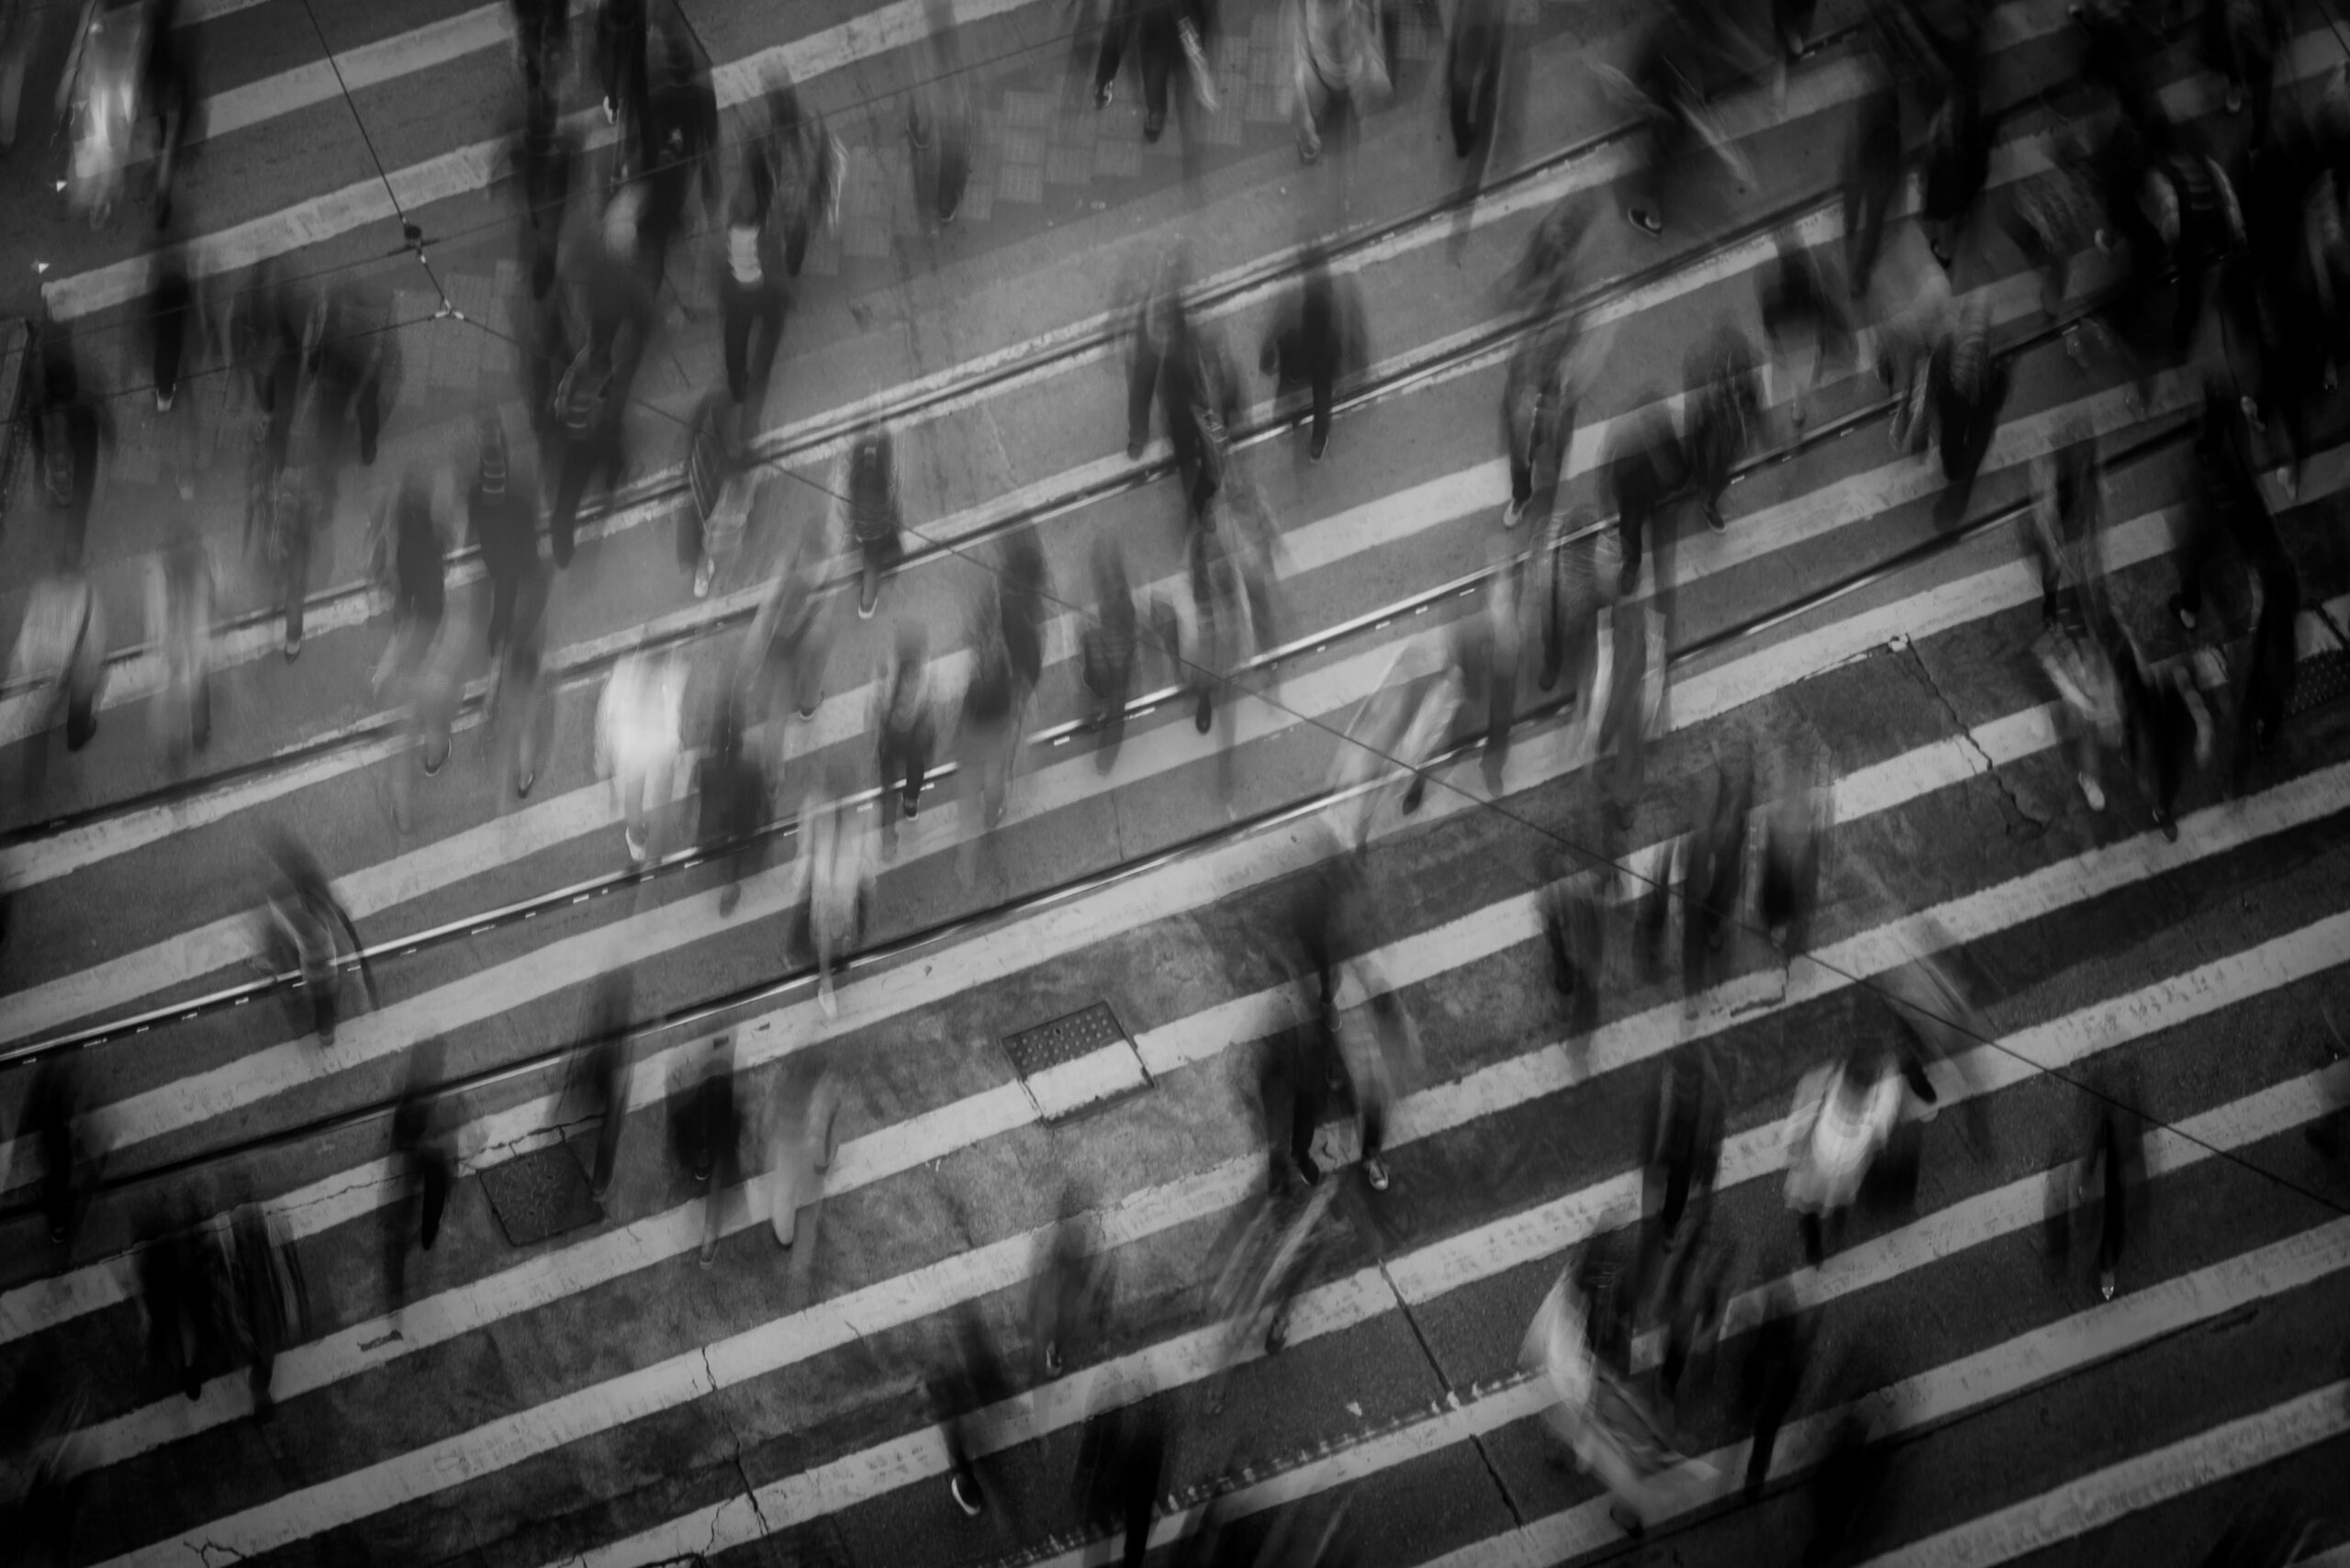 Black and white crowd timelapse by Mike Chai via Pexels